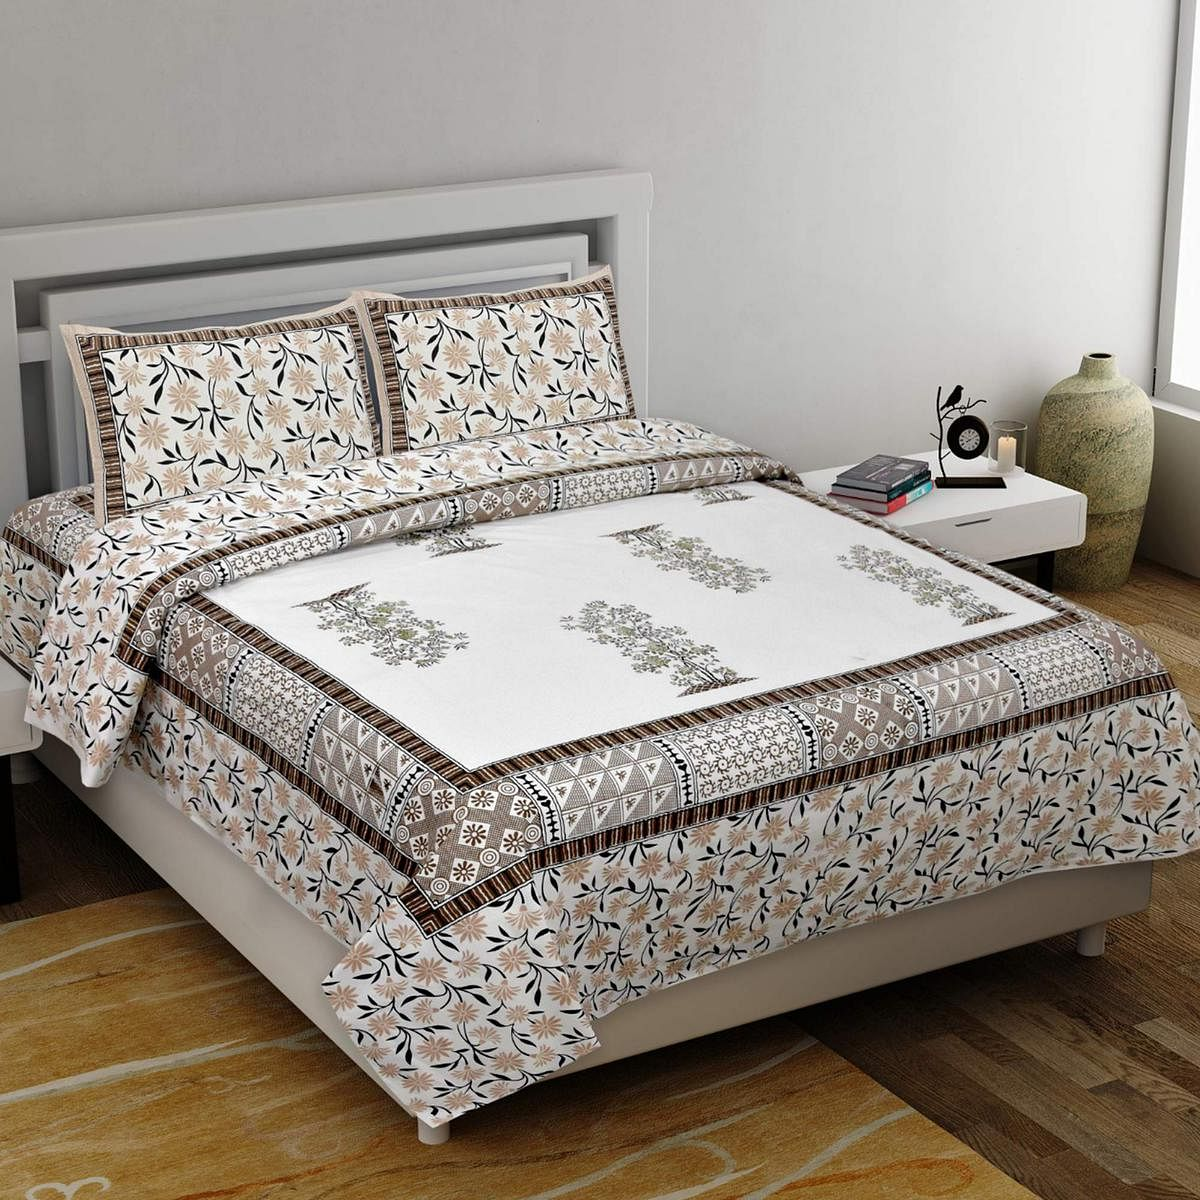 Diva Collection - Red Colored Jaipuri Print Cotton King Bedsheet with 2 Pillow Cover